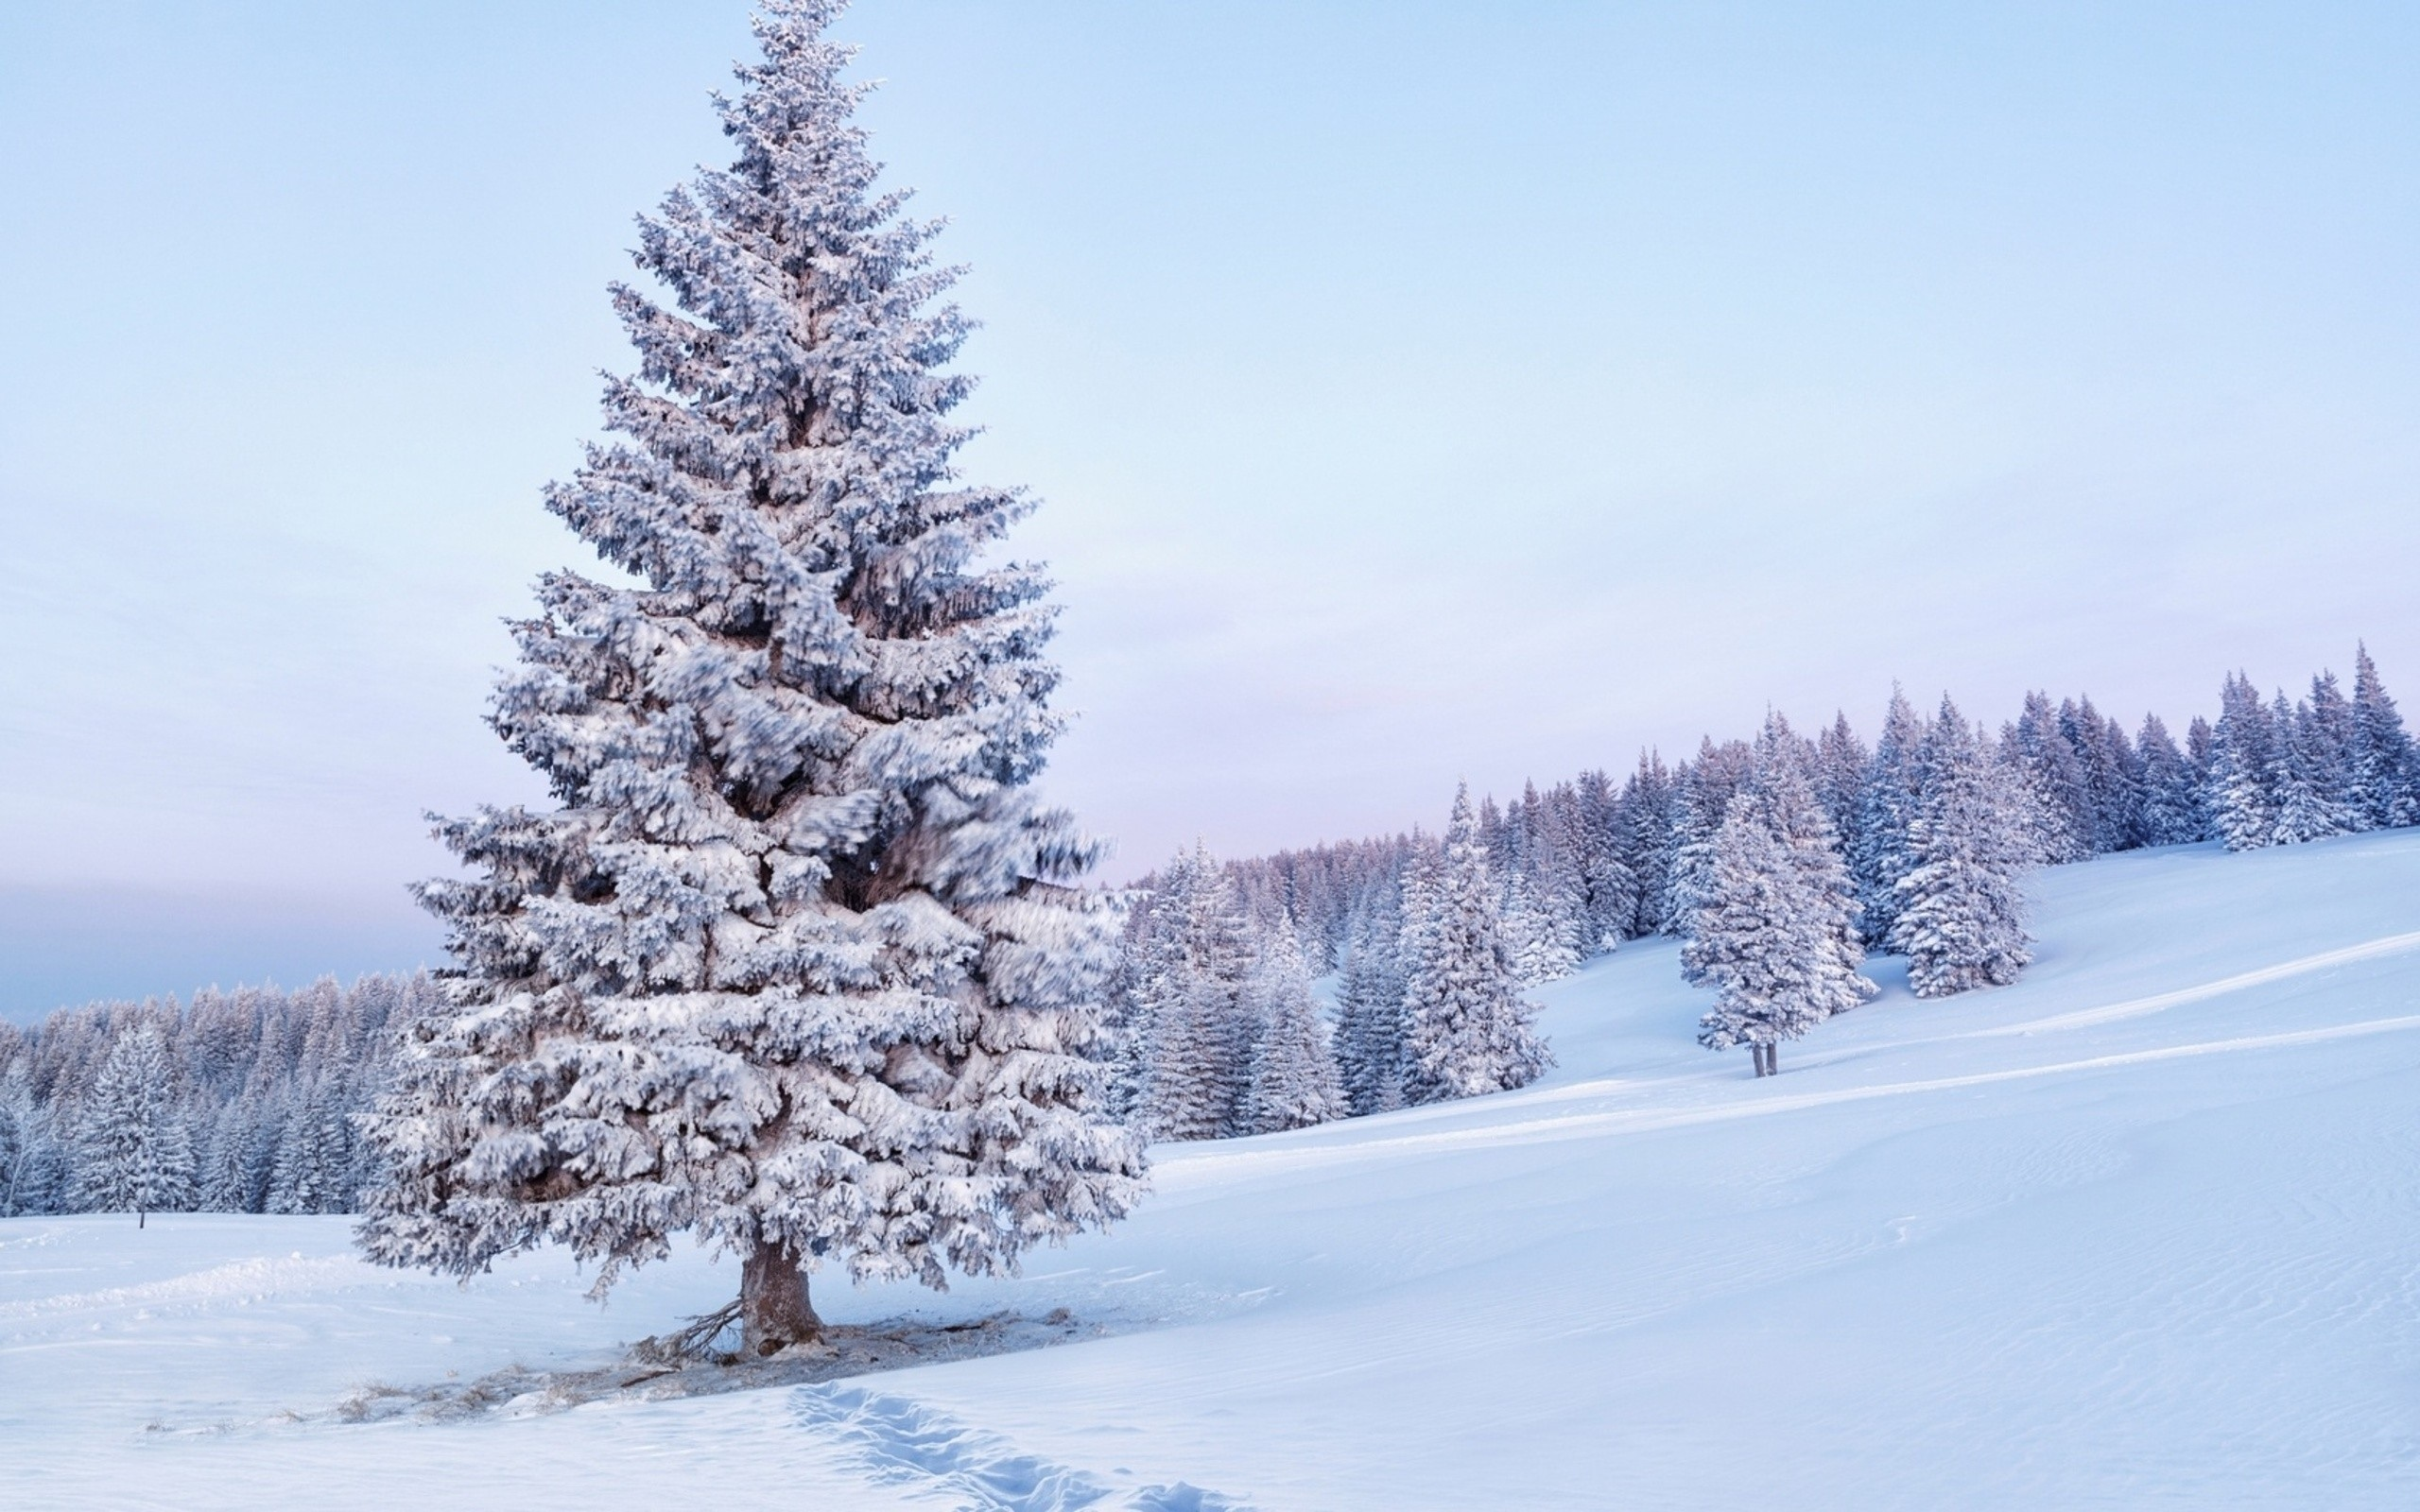 Snow Covered Tree   Wallpaper 40436 2560x1600